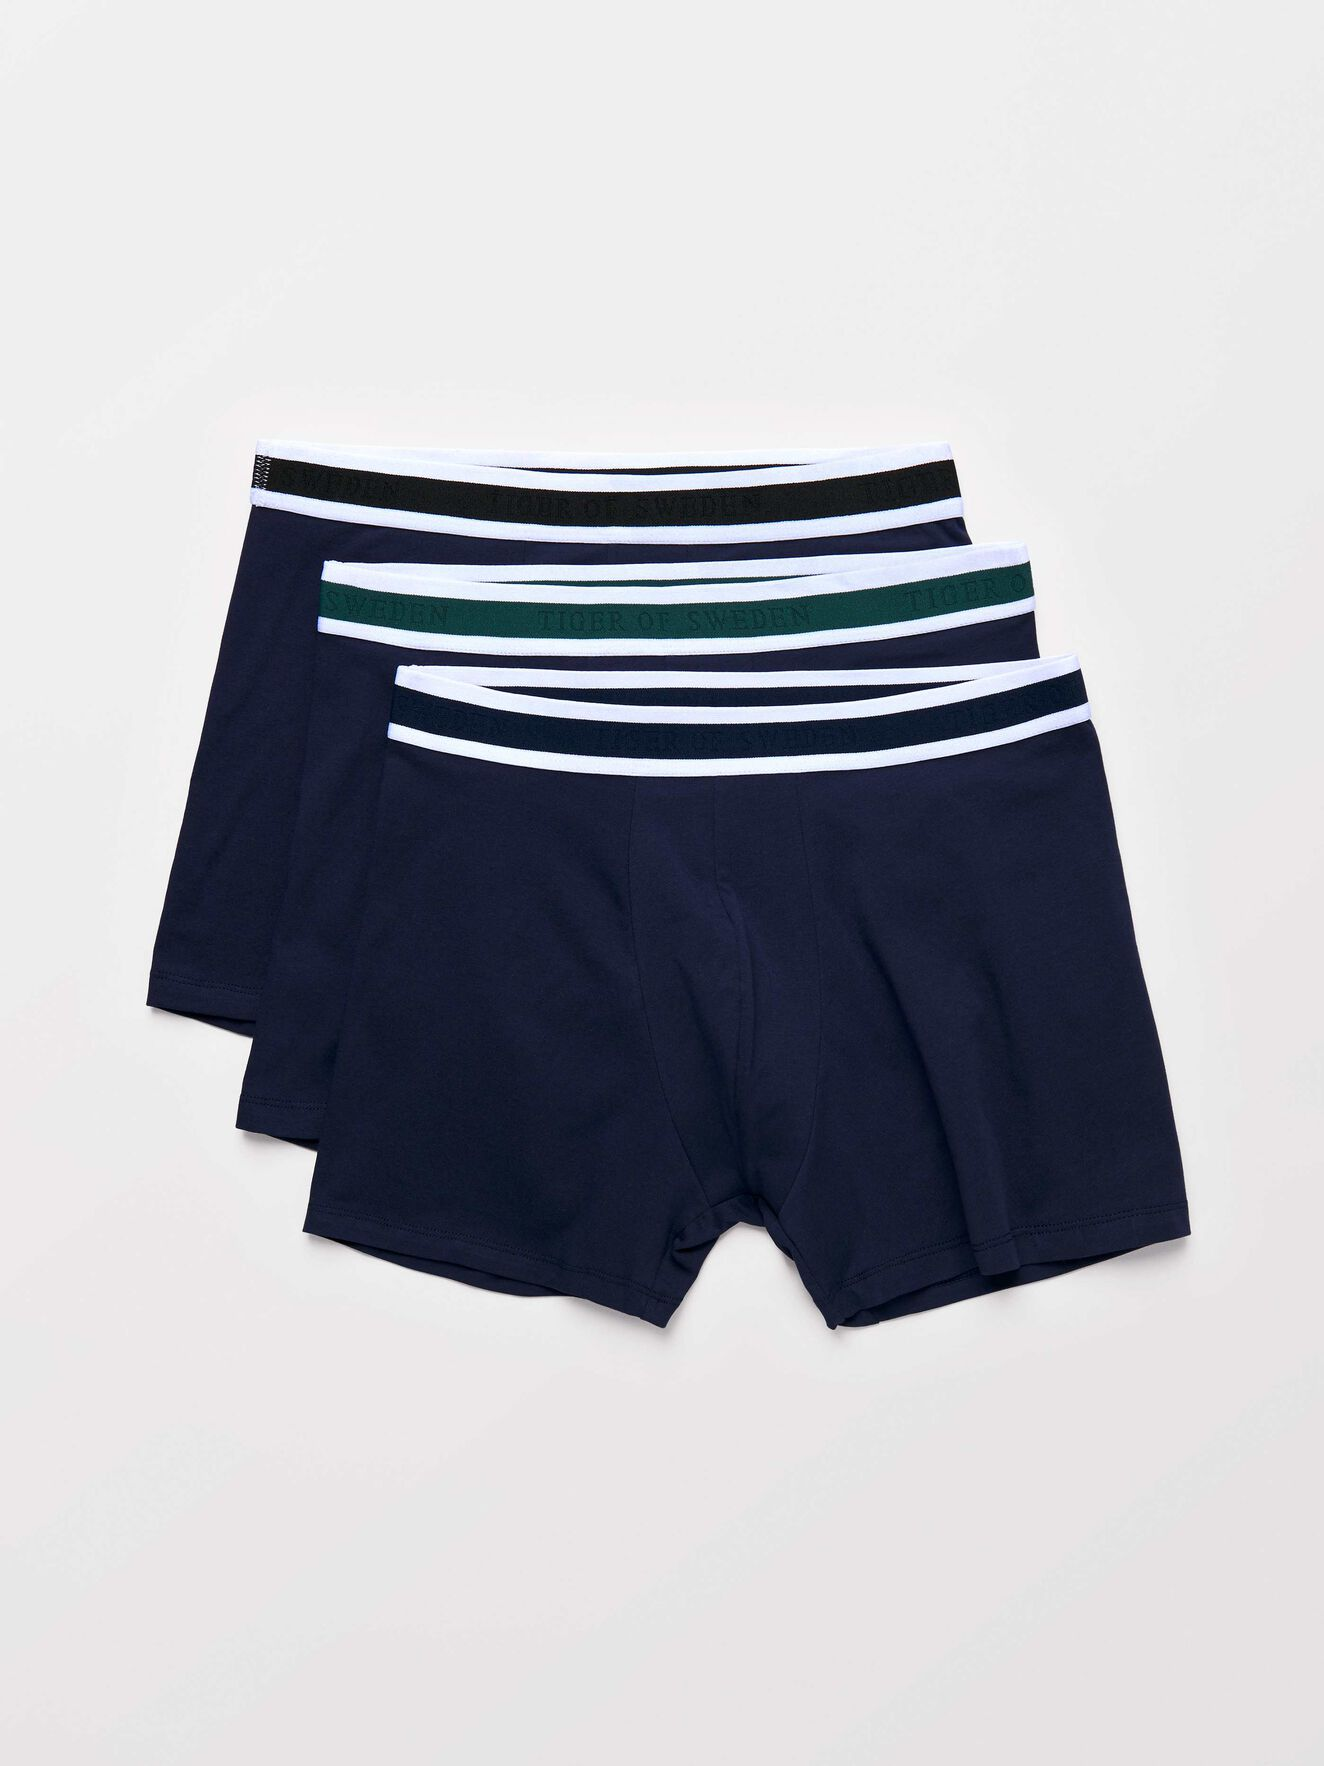 Ohlson Boxers in Light Ink from Tiger of Sweden